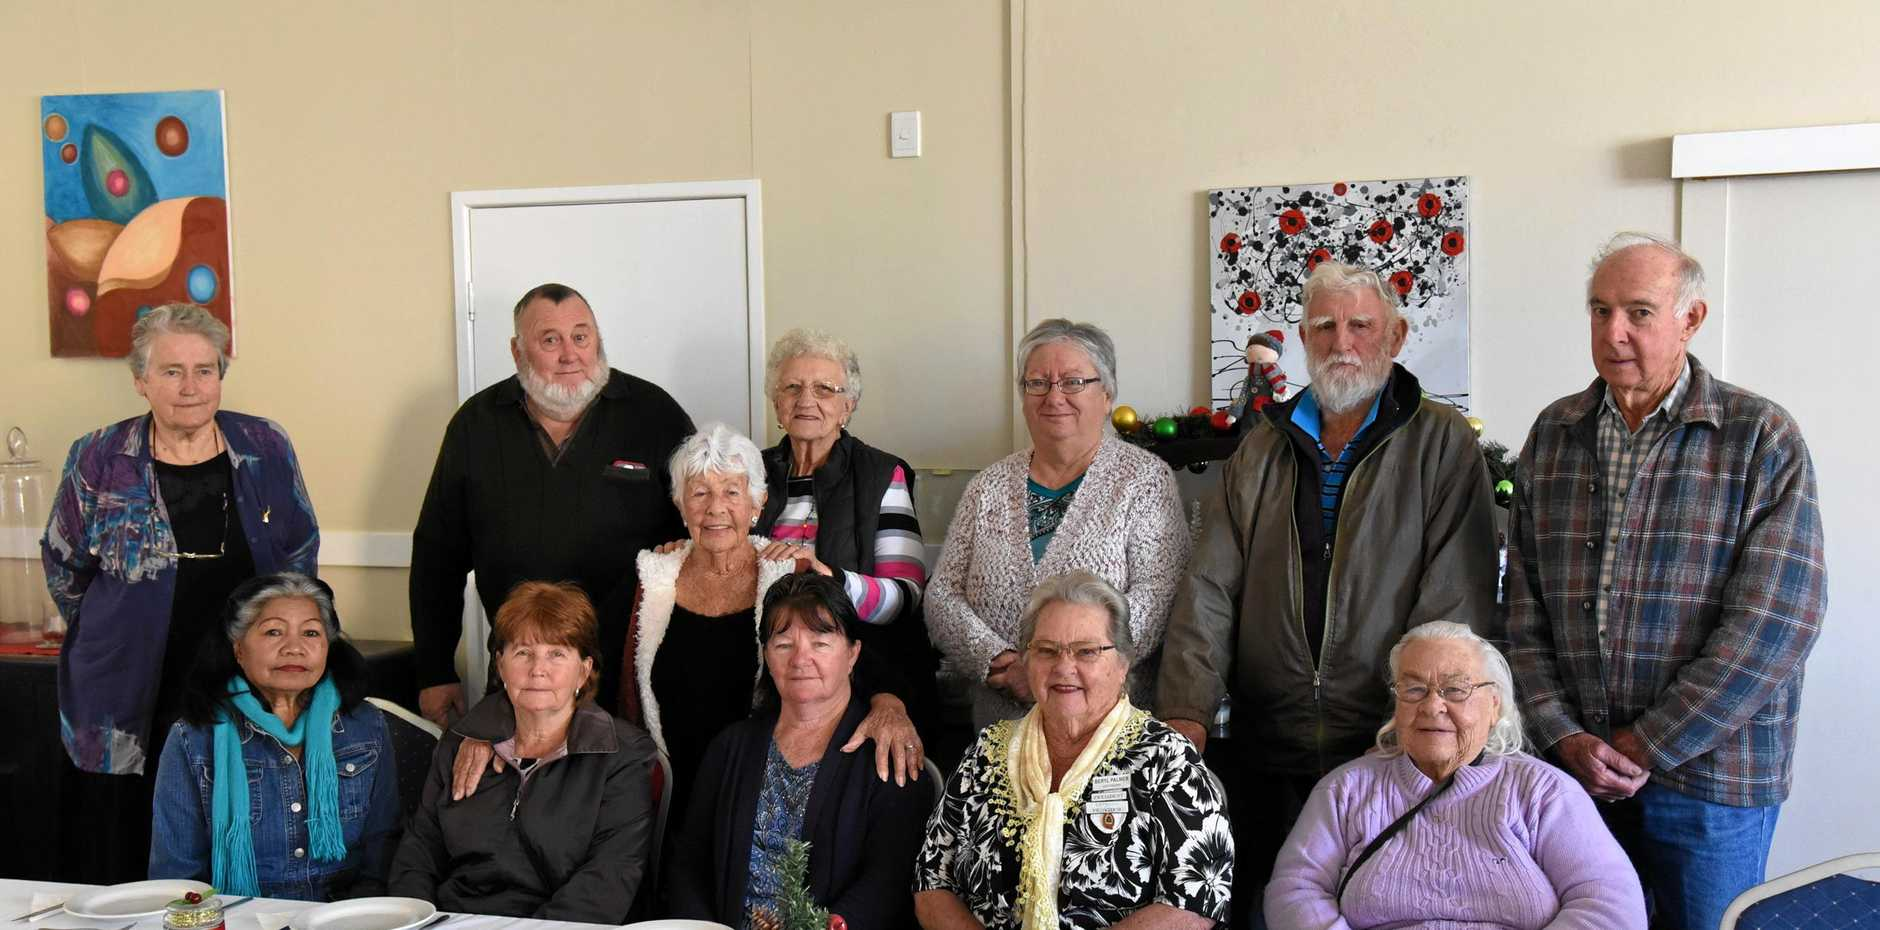 STICKING TOGETHER: Gayndah Senior Citizens at their Christmas in July party at the Golden Orange Hotel Motel on Thursday, July 18.